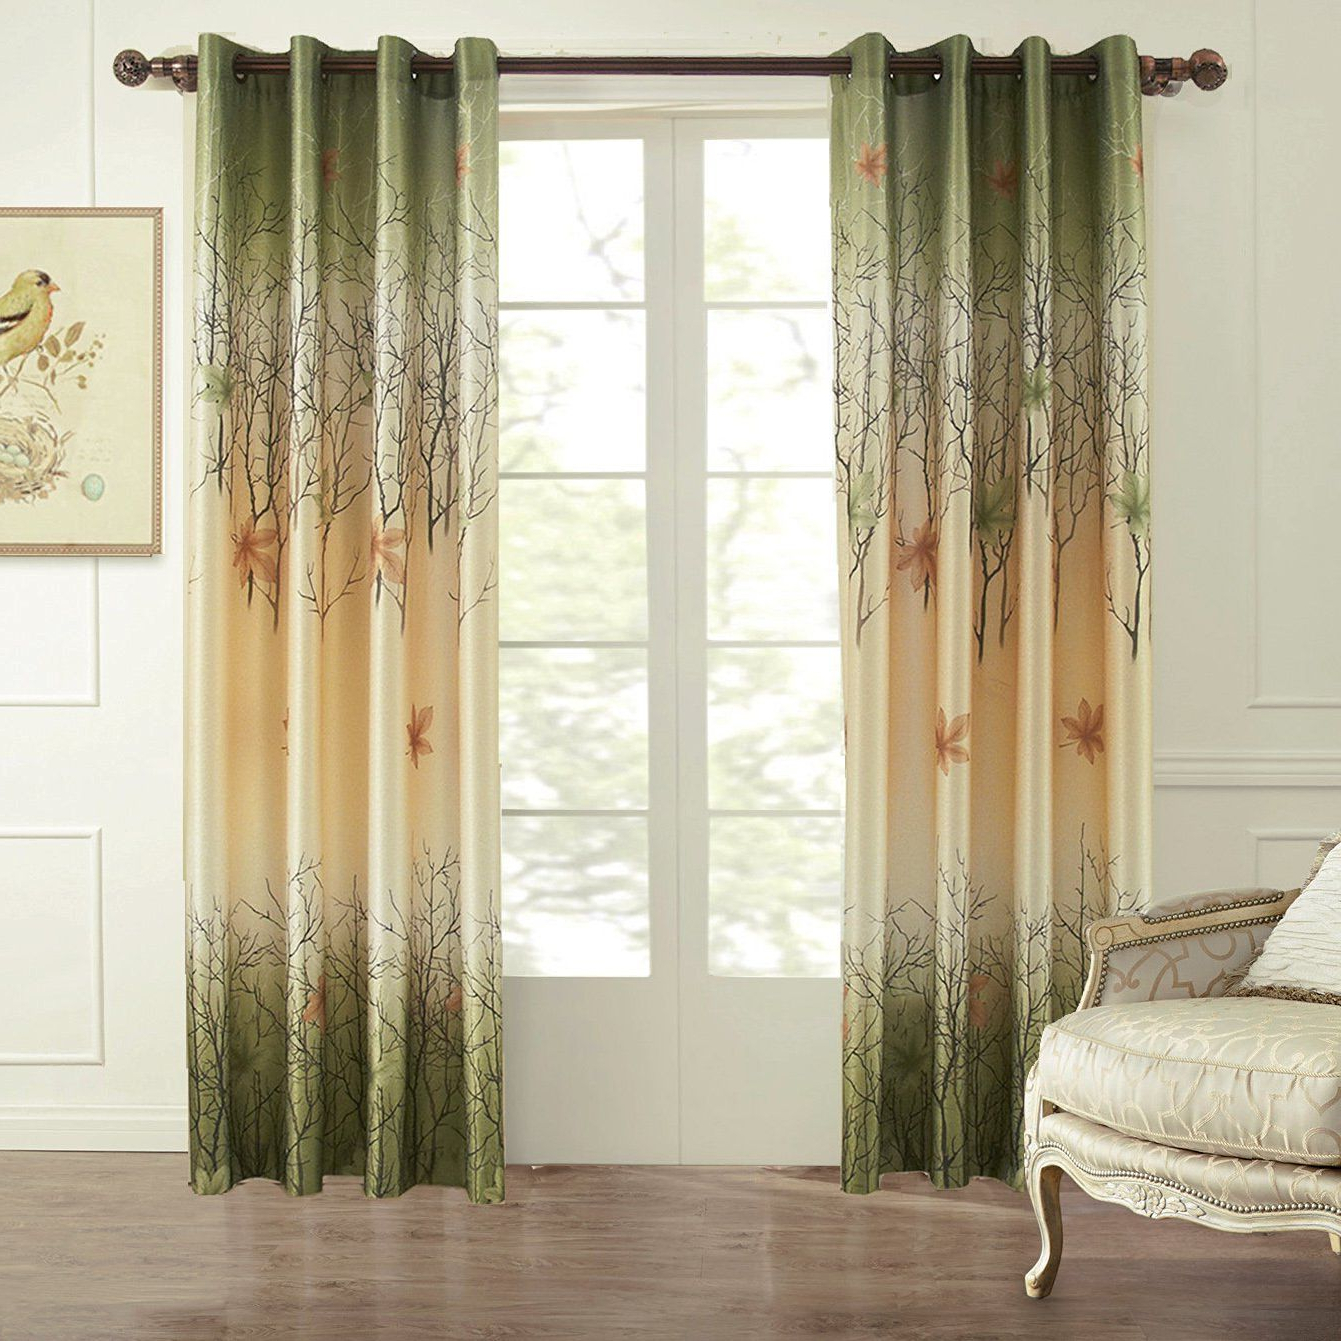 Amazon: Koting Home Fashion Set Of 2 Panels/pair,green Pertaining To Latest Floral Watercolor Semi Sheer Rod Pocket Kitchen Curtain Valance And Tiers Sets (View 15 of 20)